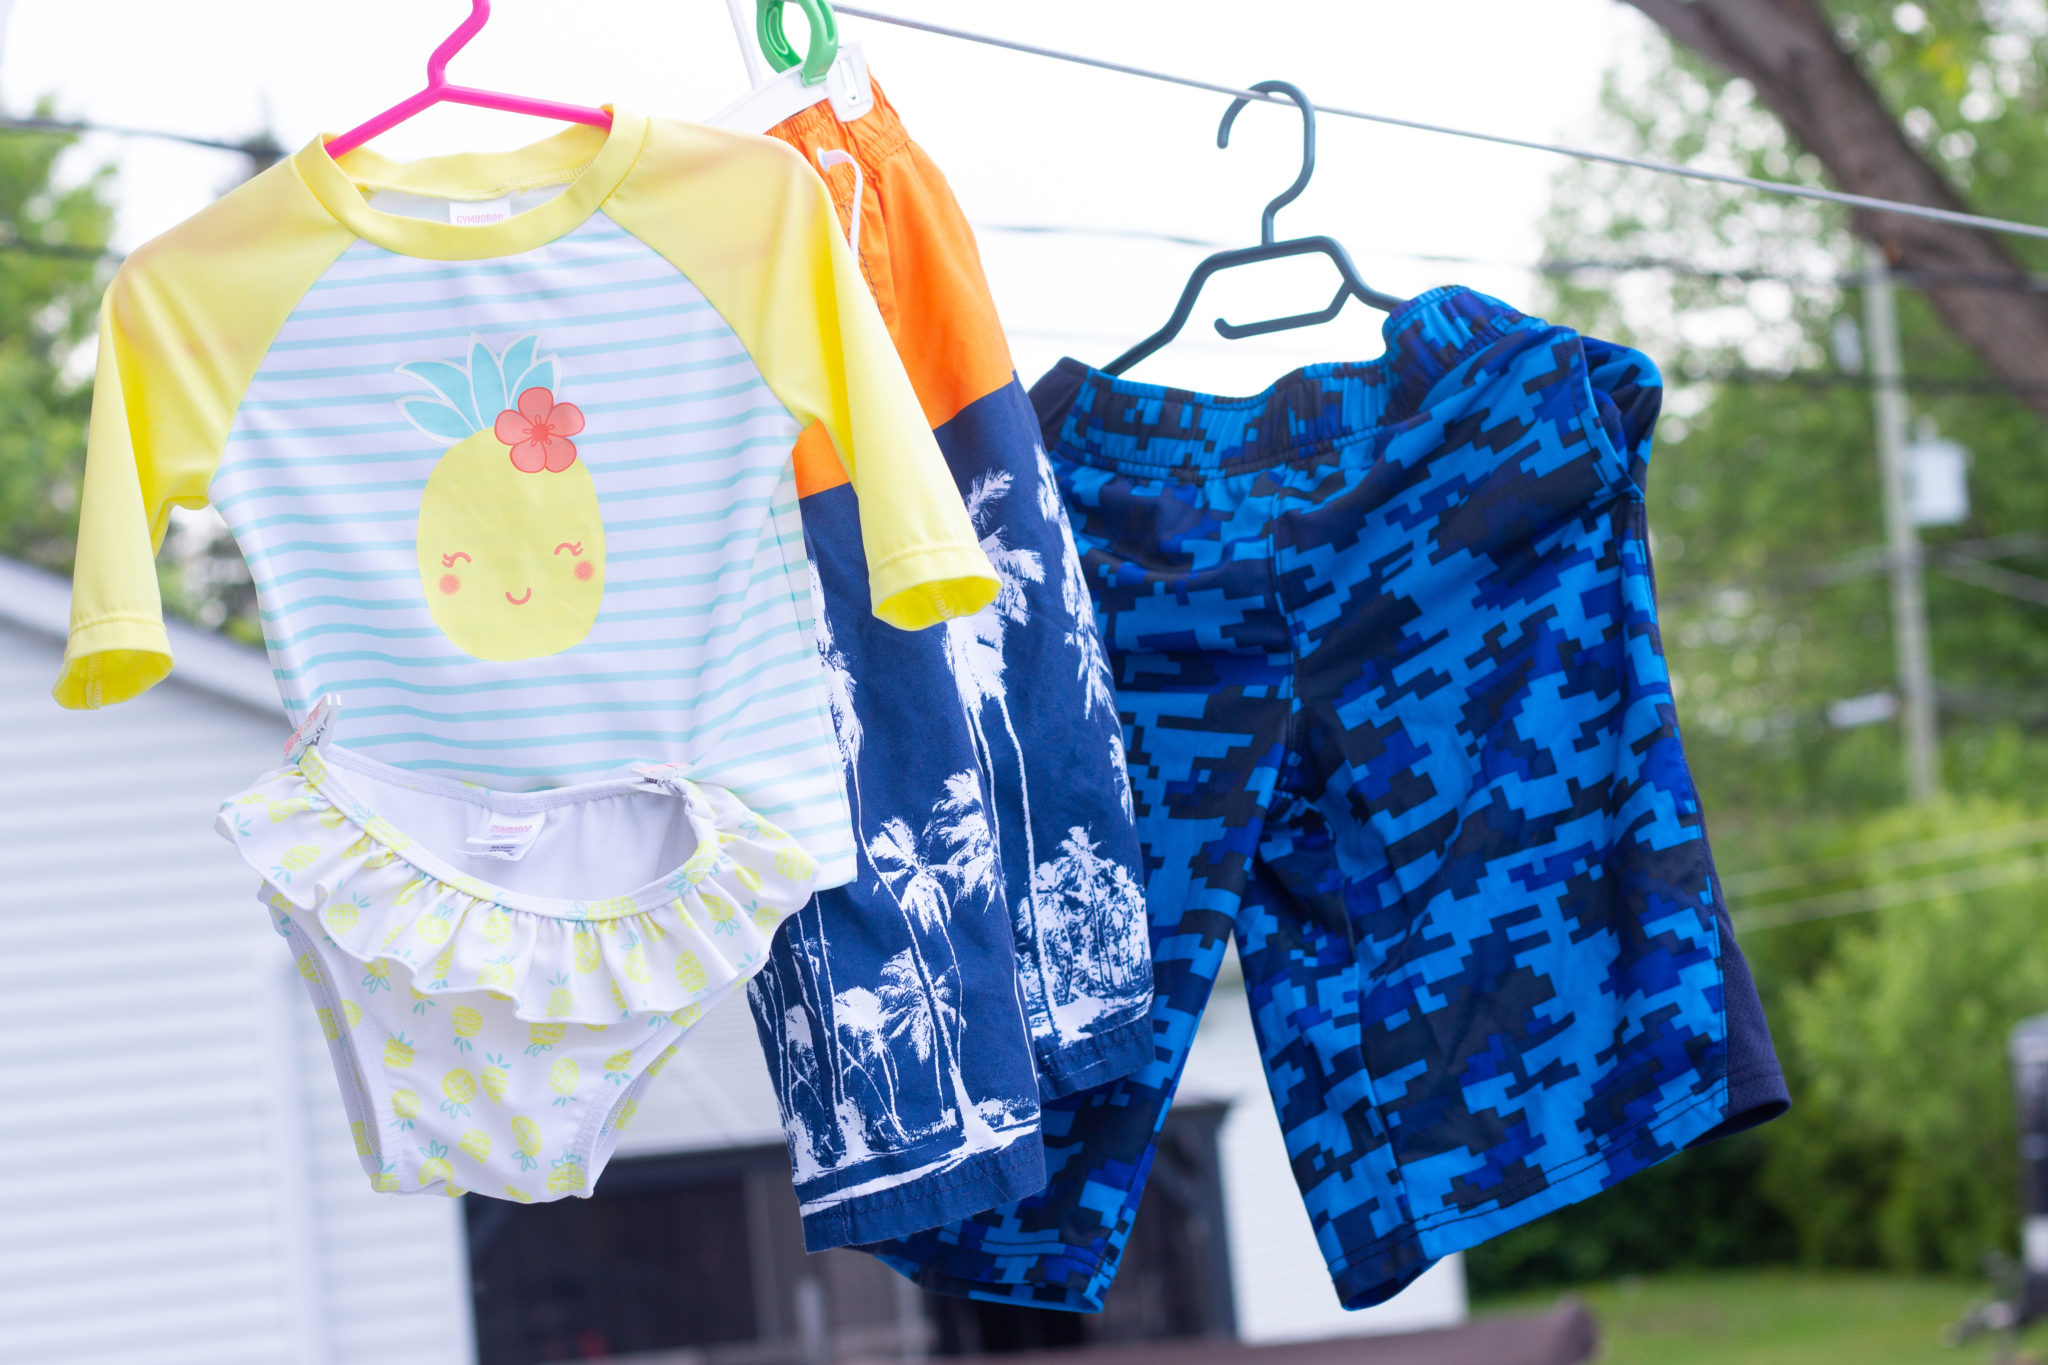 How To Get Your Kids Wardrobe Summer Ready On A Budget | Reshopper App